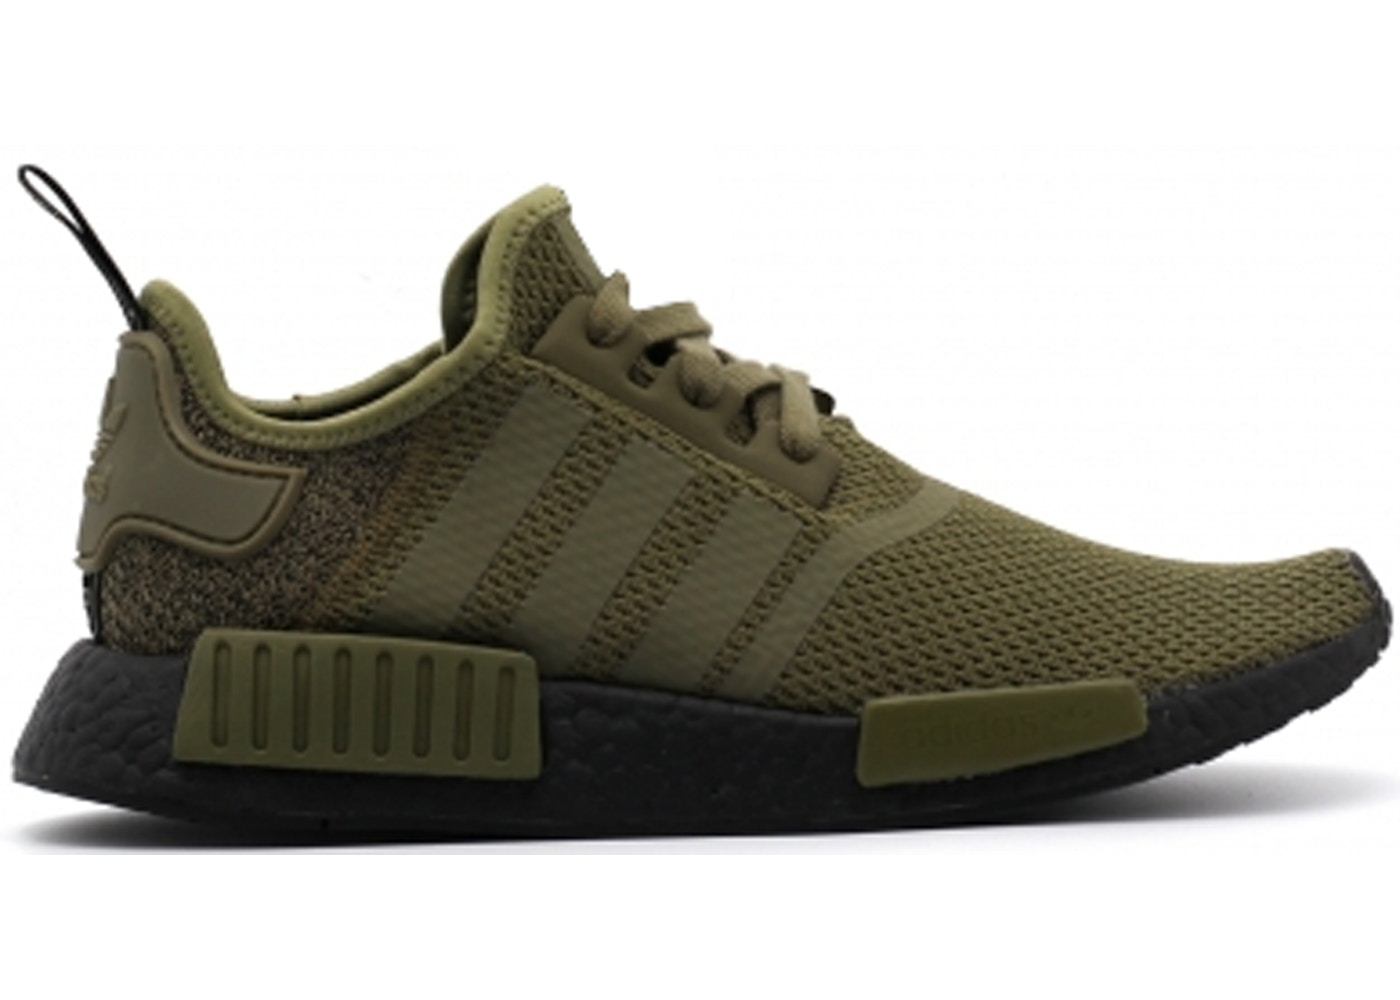 3889179f0 adidas NMD Size 8 Shoes - New Lowest Asks